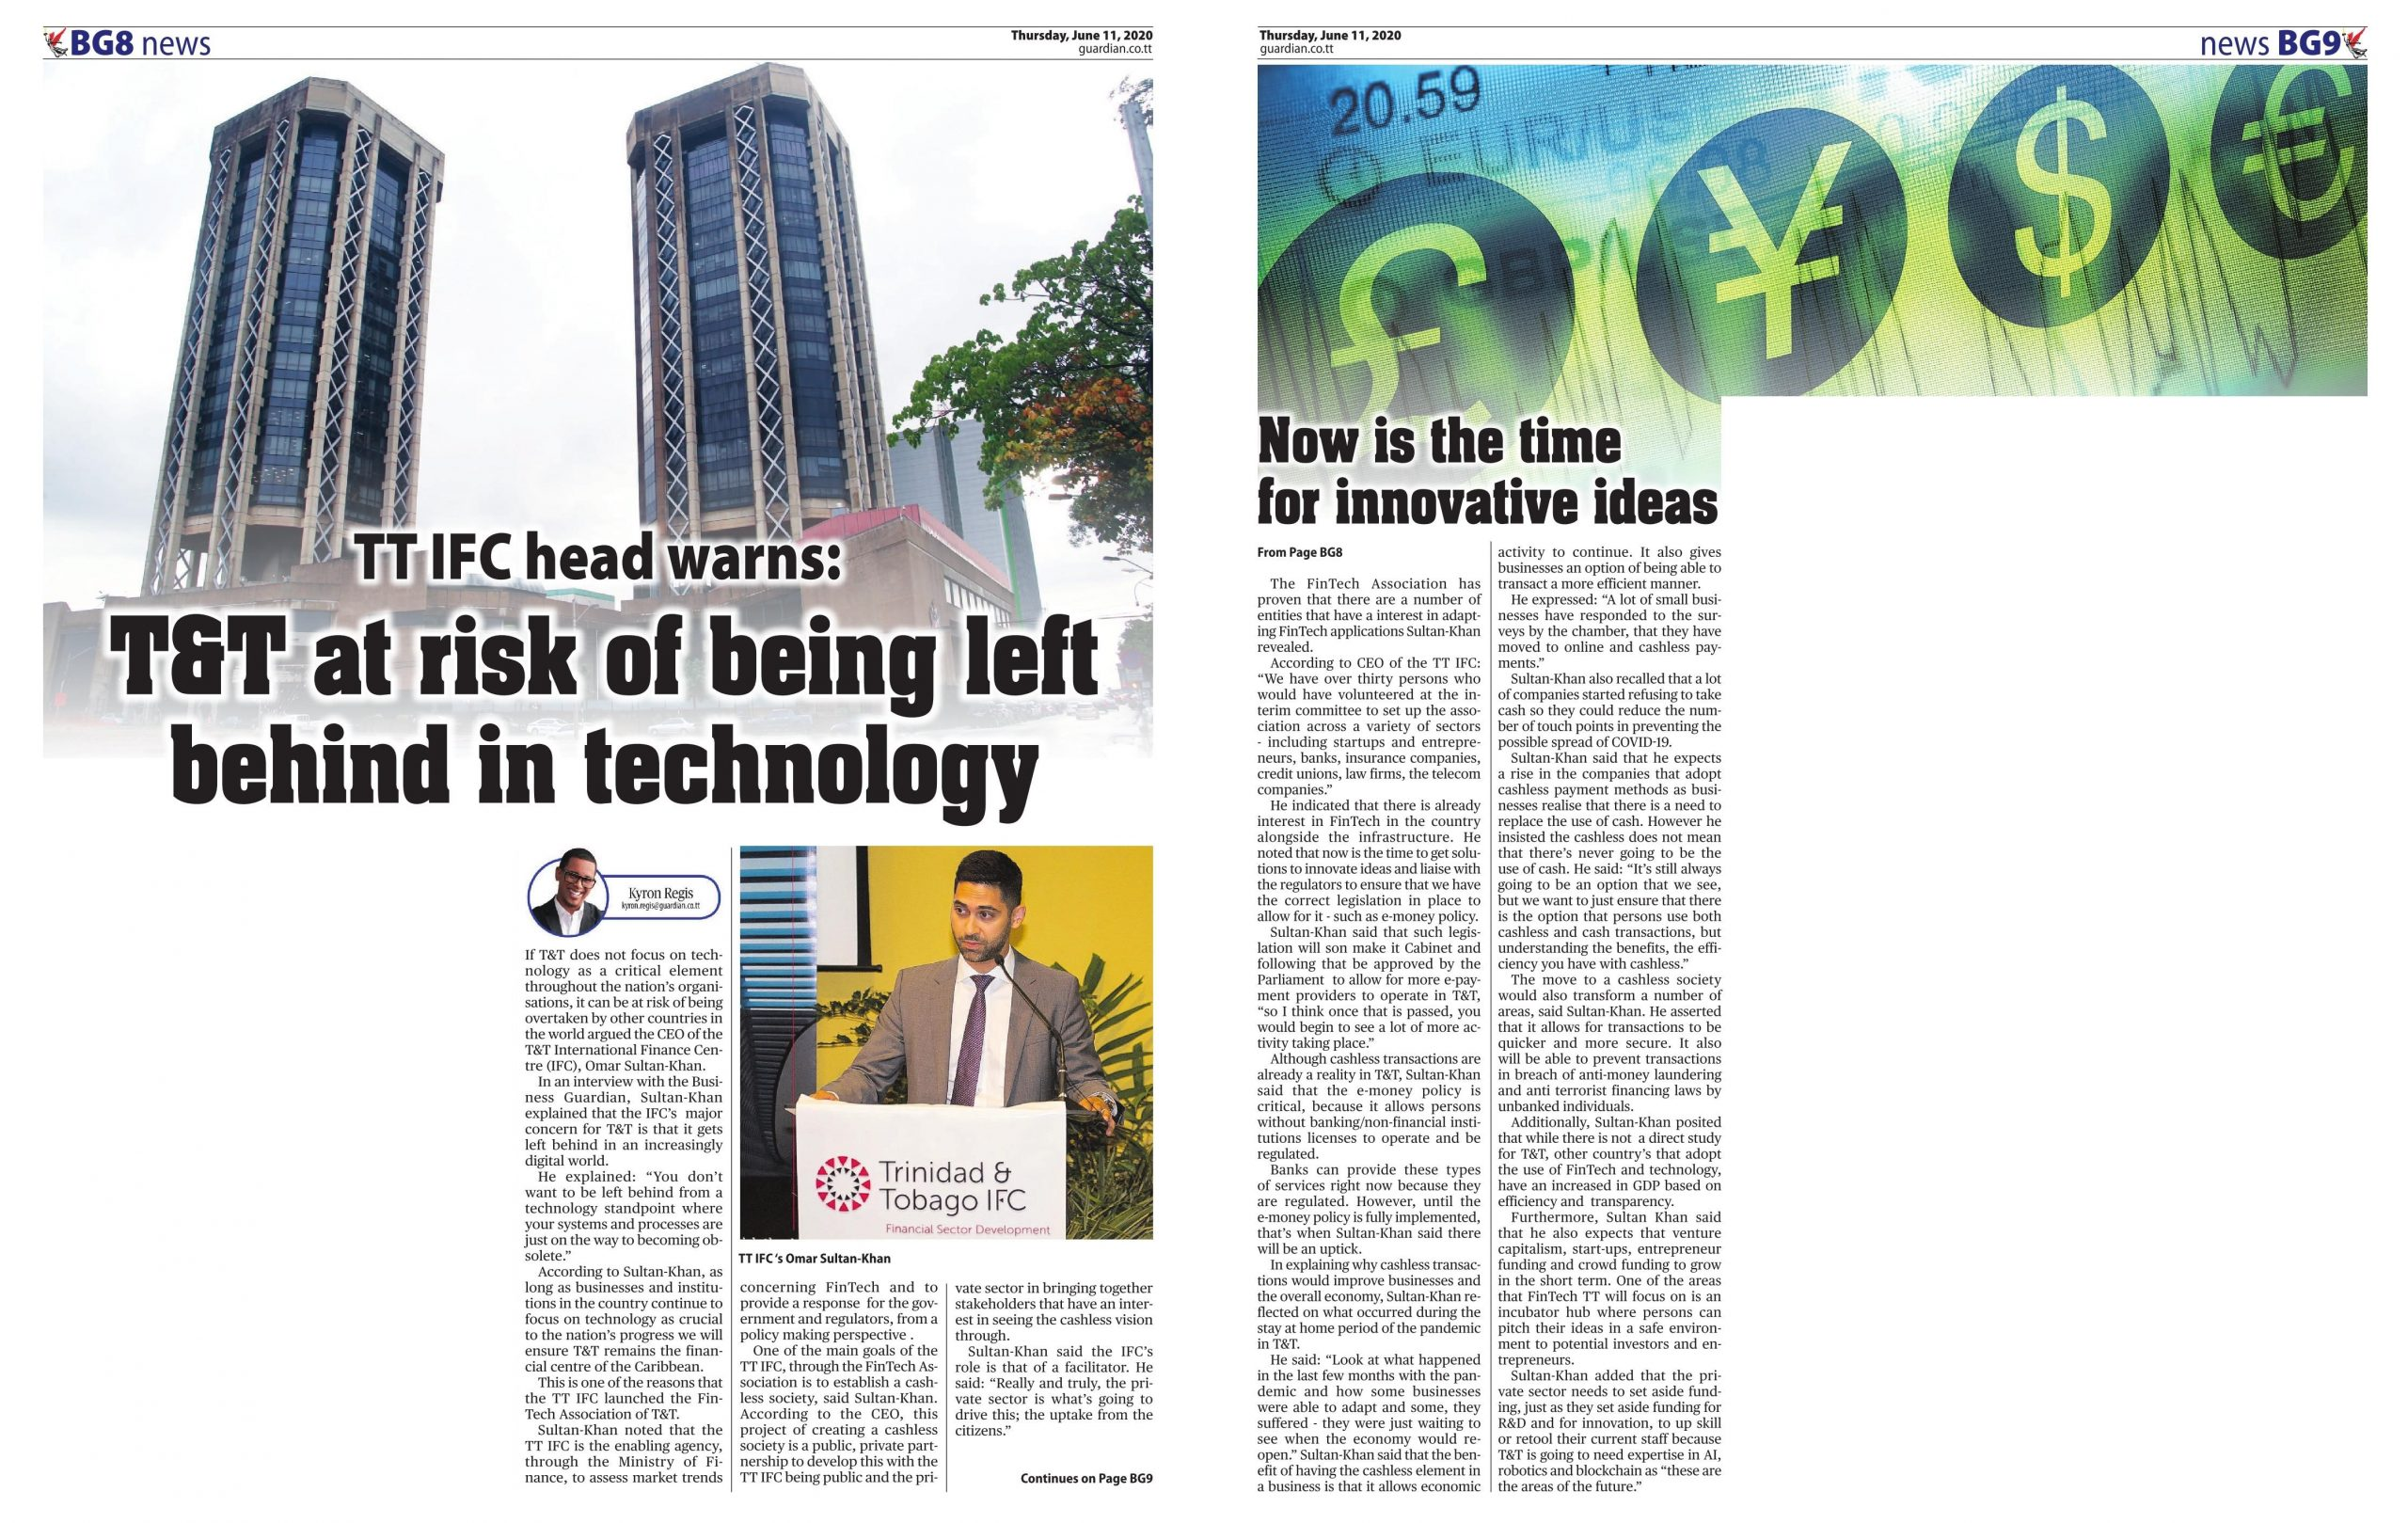 T&T at risk of being left behind in technology TTIFC head warns